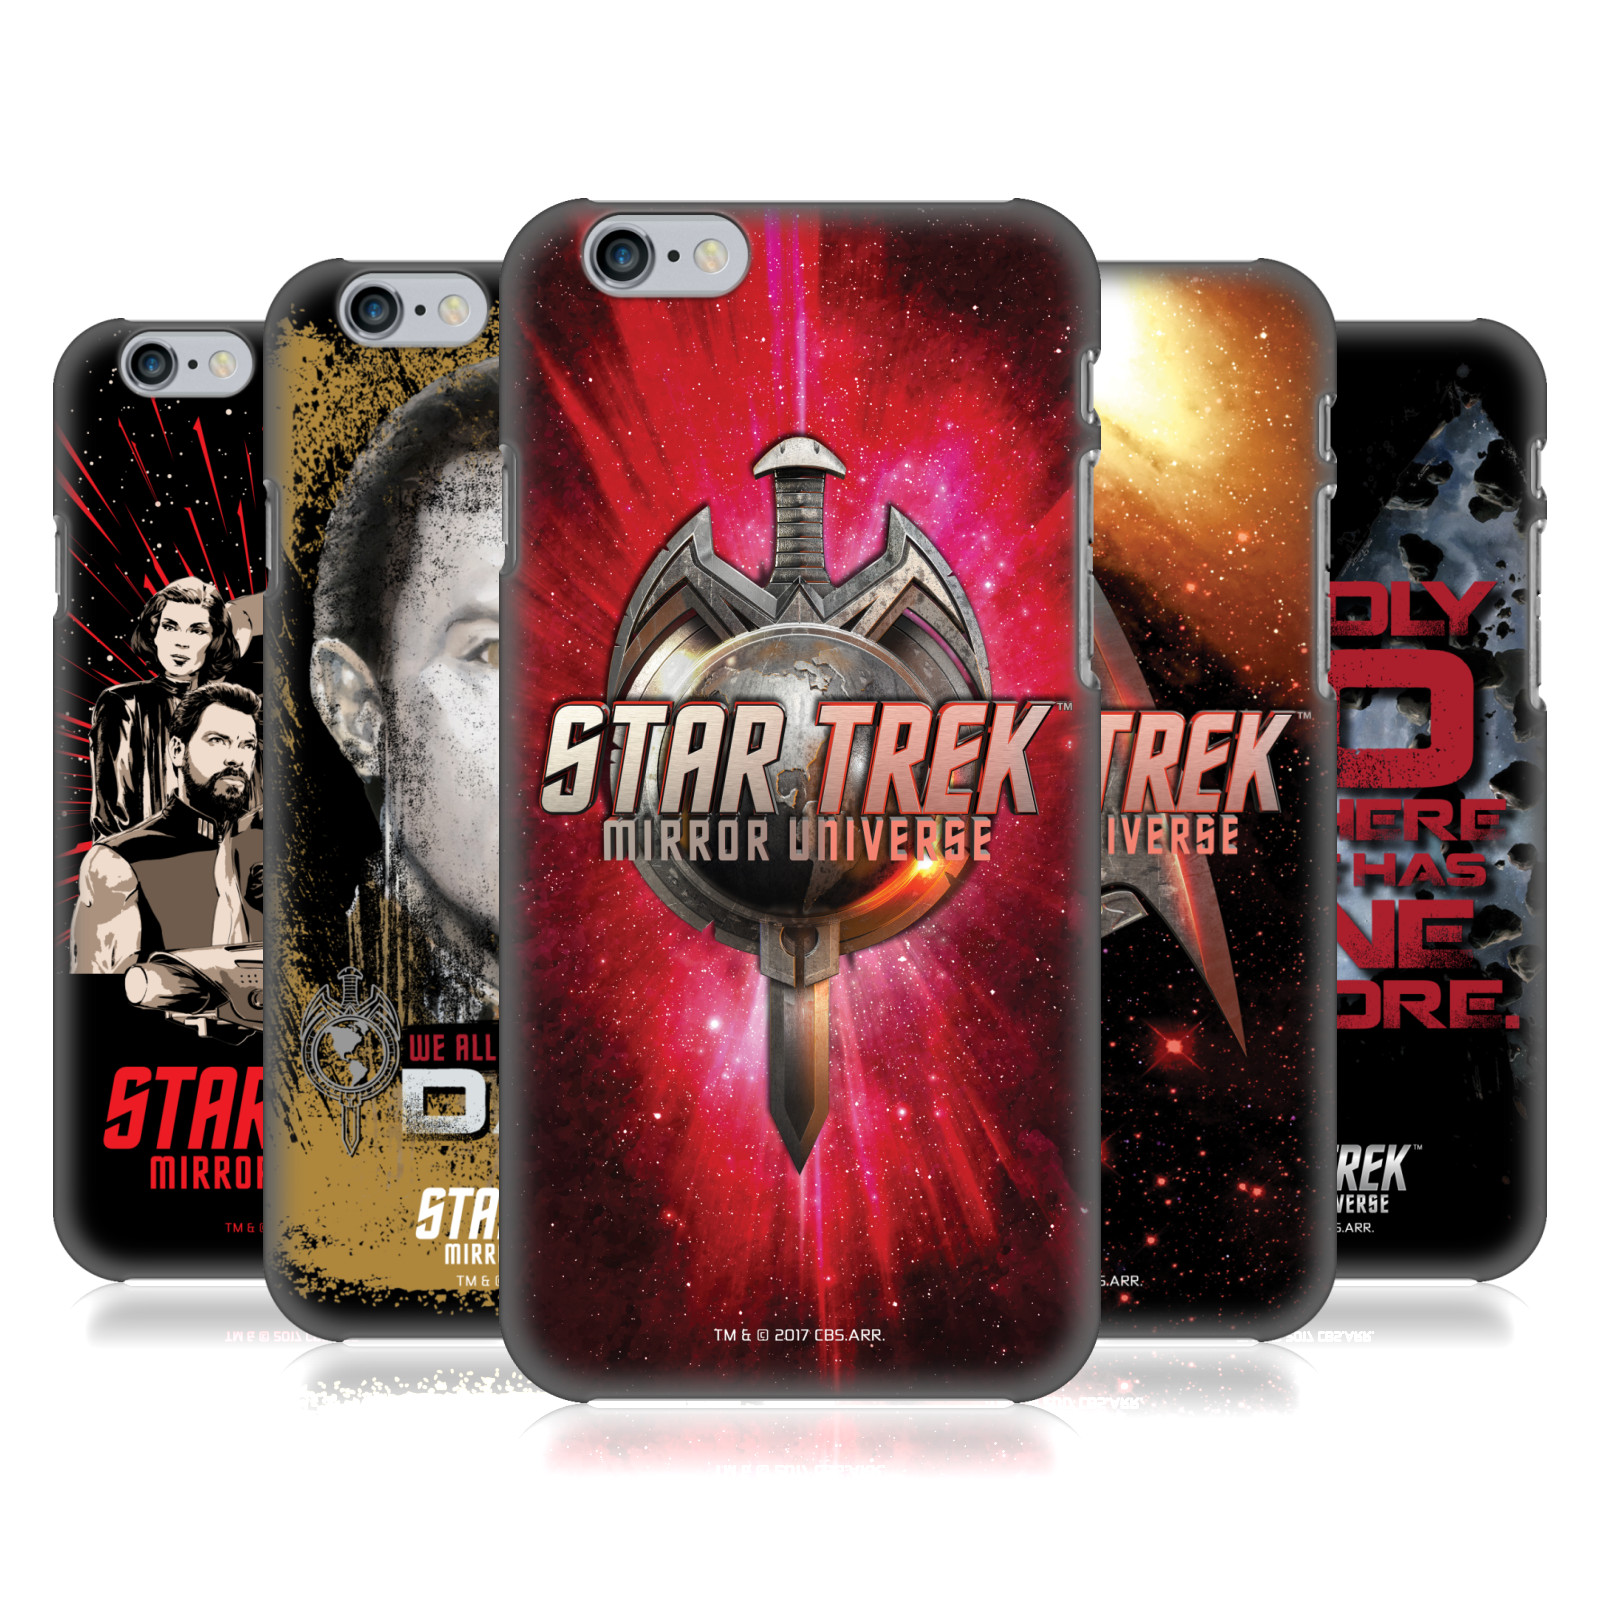 Star Trek Mirror Universe TNG